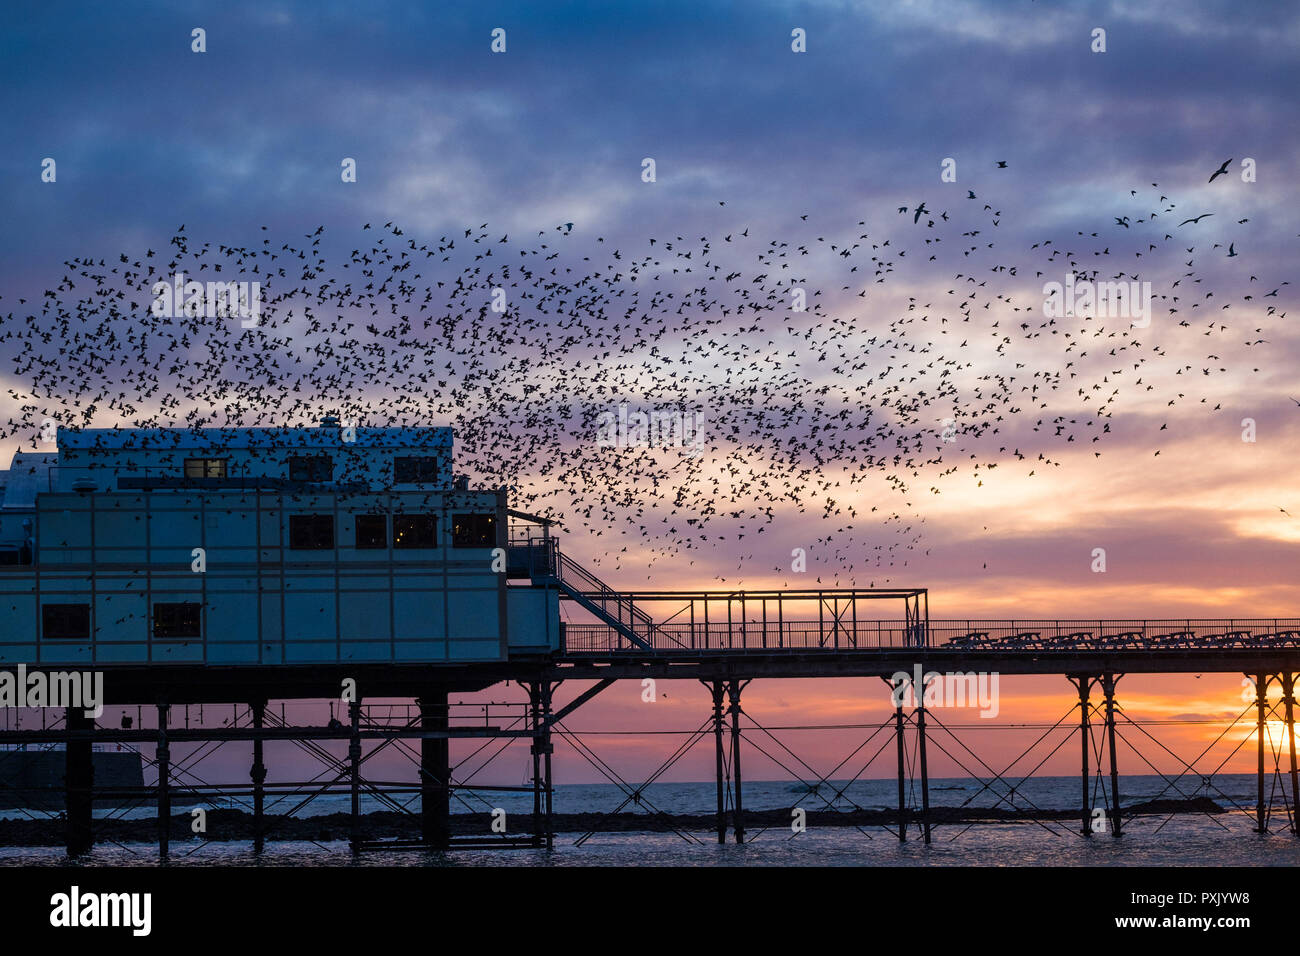 UK Weather: Tens of thousands of tiny starlings perform elegant aerial balletic 'murmurations' in the sky above Aberystwyth, before swooping down to roost for the night on the forest  of cast iron legs underneath the town's Victorian seaside pier. Aberystwyth is one of the few urban roosts in the country and draws people from all over the UK to witness the nightly displays  photo credit Keith Morris/ Alamy Live News Stock Photo